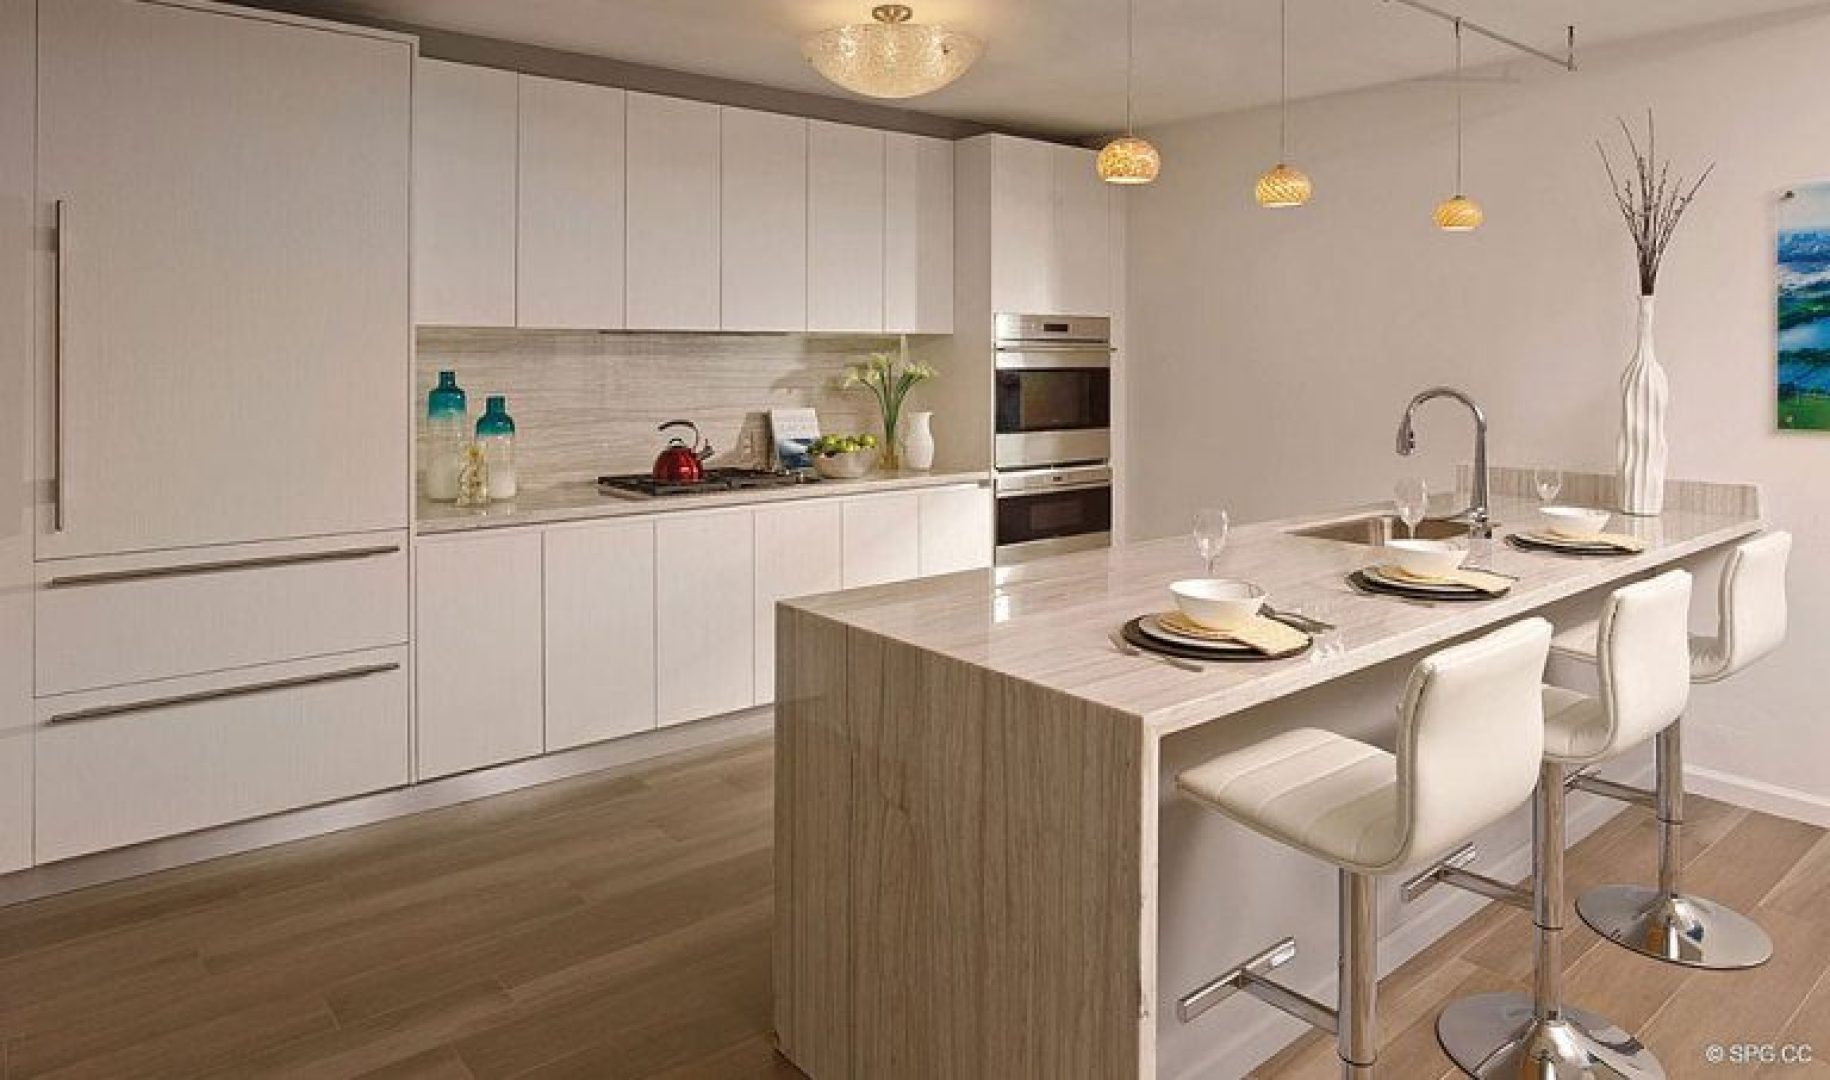 Open Gourmet Kitchen Design inside Riva, Luxury Waterfront Condos in Fort Lauderdale, Florida 33304.